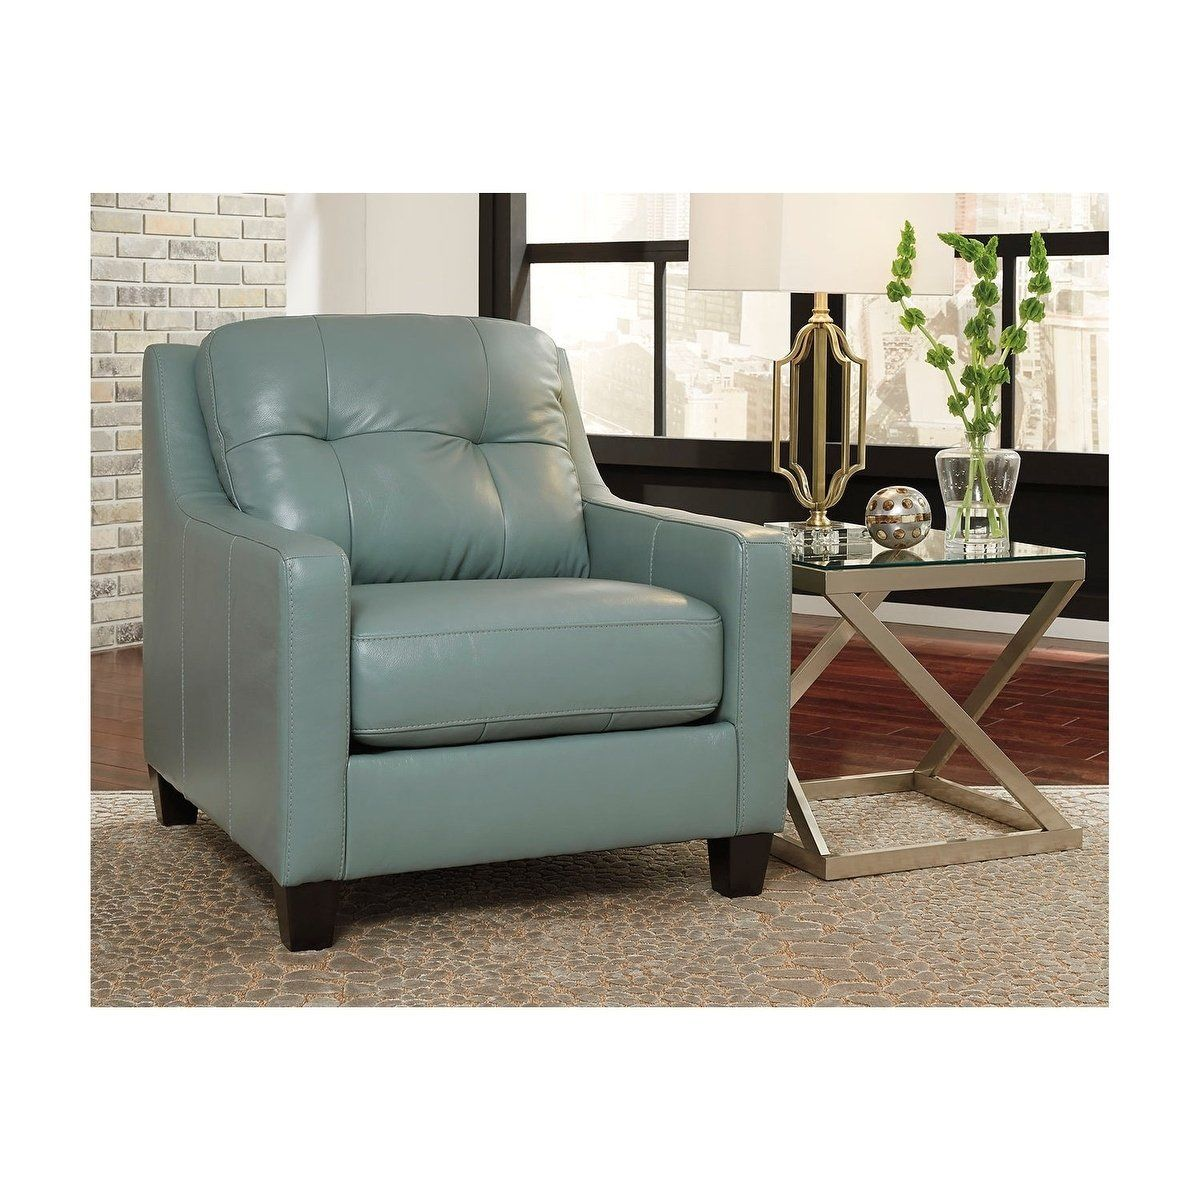 Best Signature Design By Ashley O Kean Chair Blue Leather 640 x 480